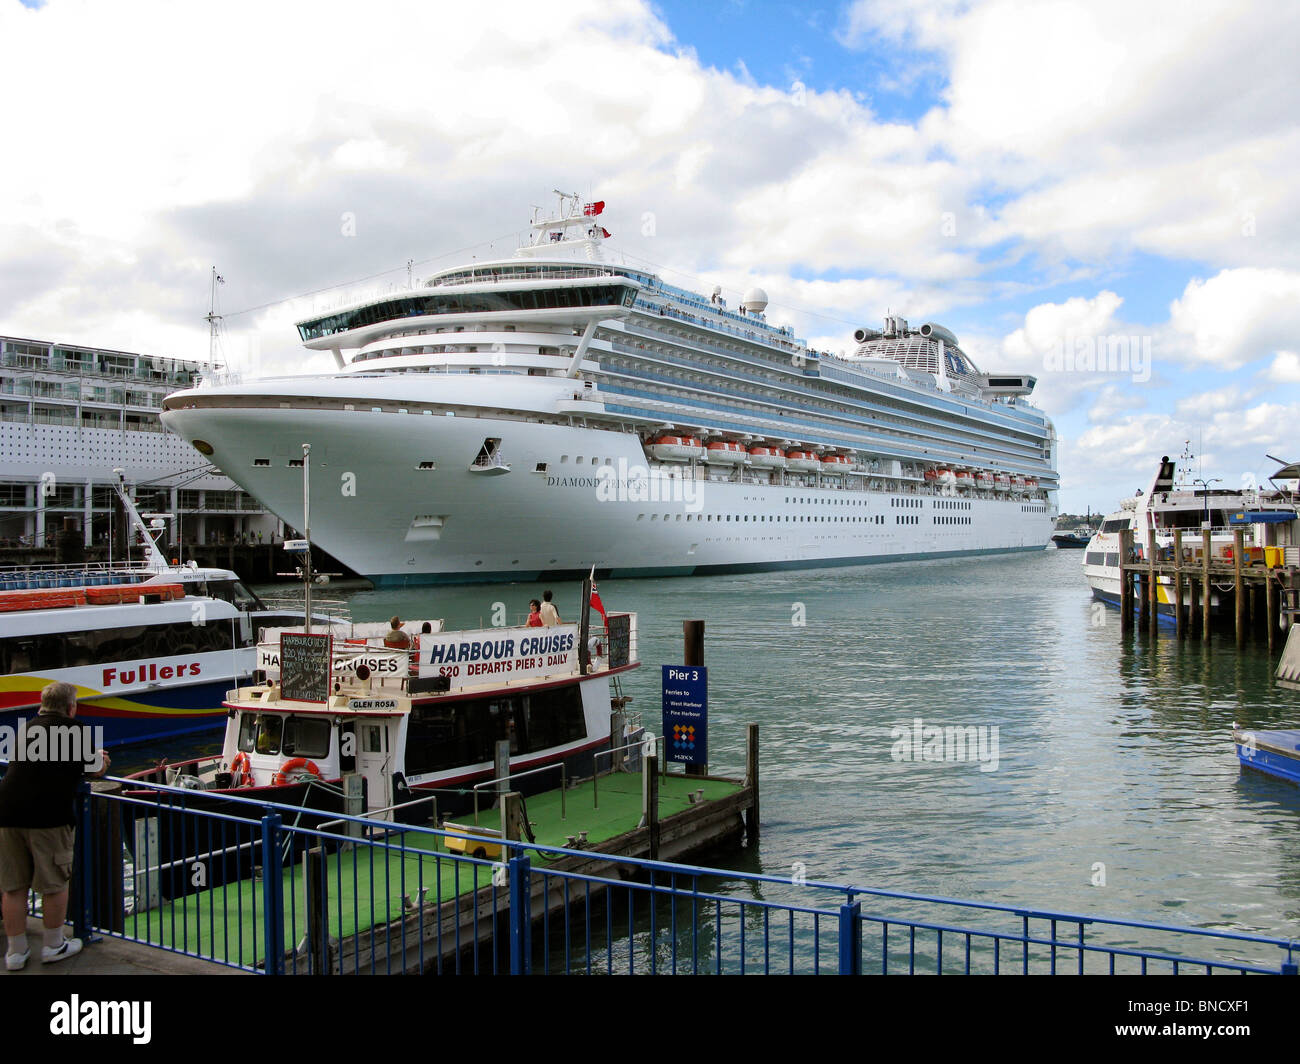 DIAMOND PRINCESS Cruise ship in harbour of Auckland New Zealand 2010 - Stock Image